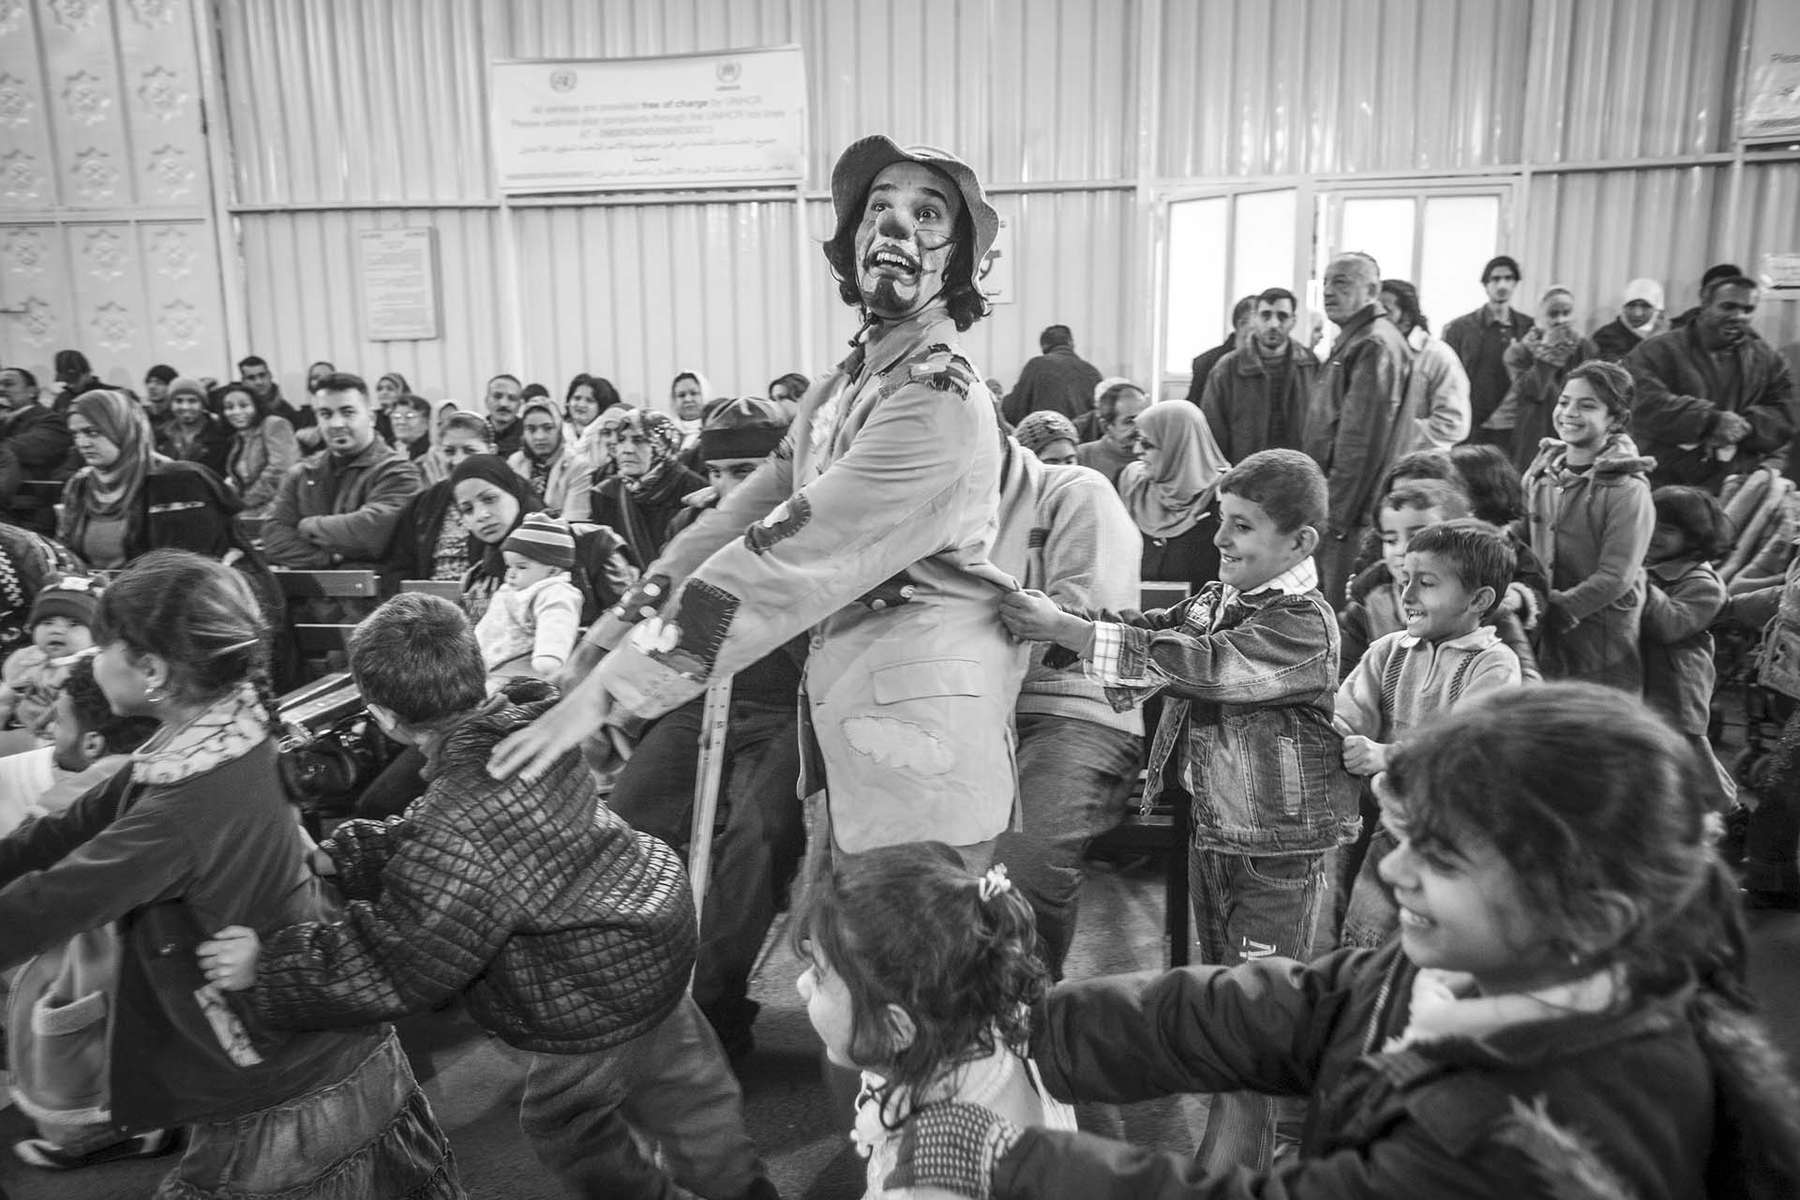 Crowsn Without Borders entertain refugee children in Damascus.